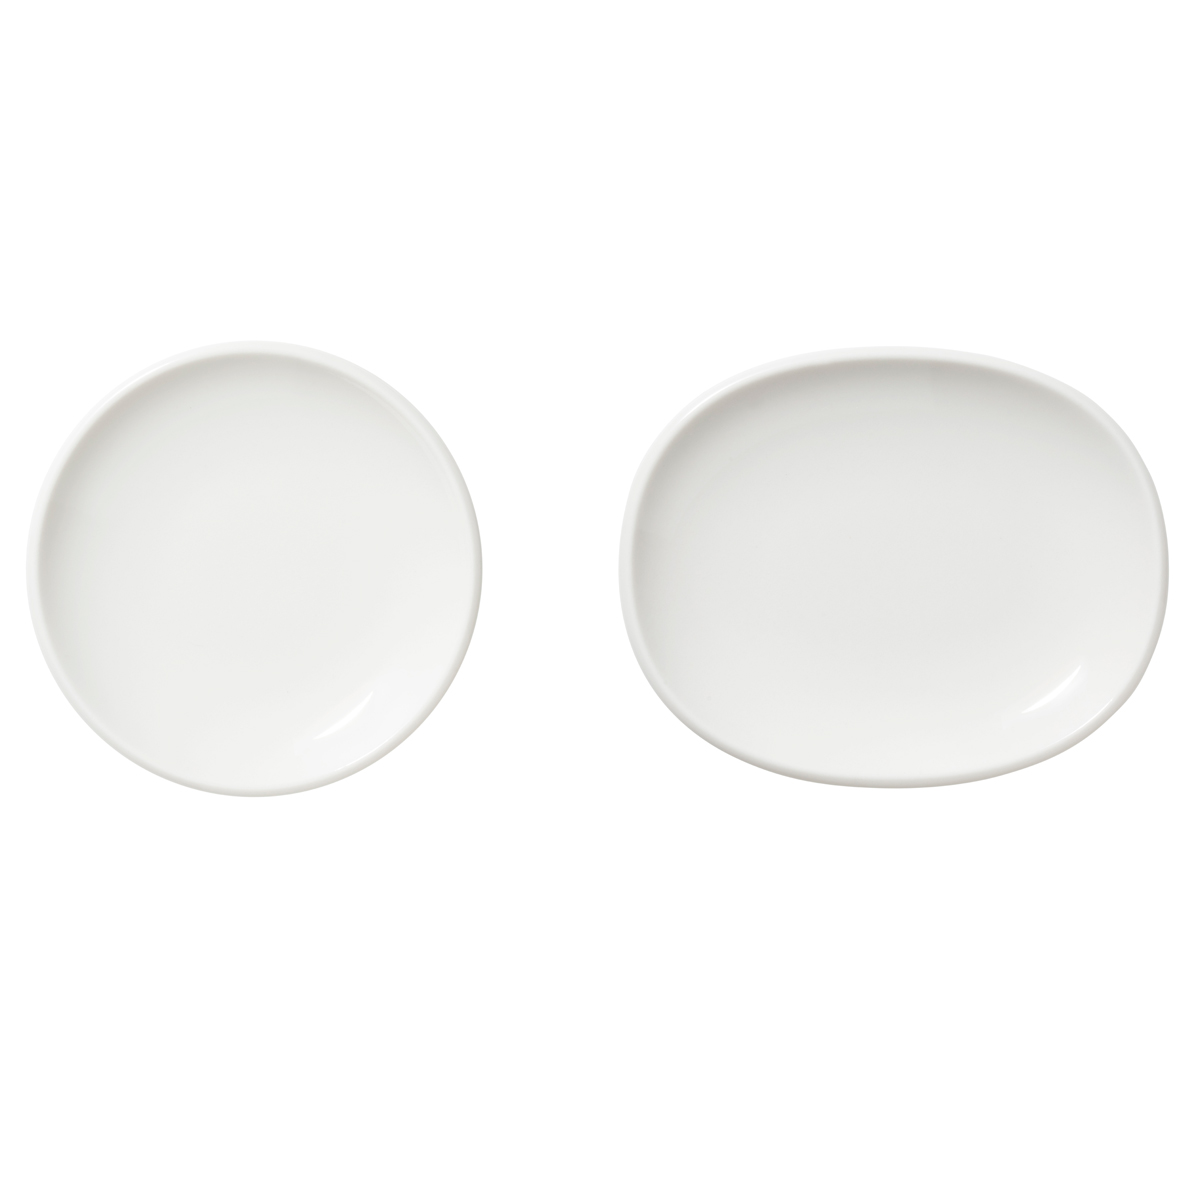 "Iittala Raami Small Plate White Set of 2, 4.5"" and 5.25"""